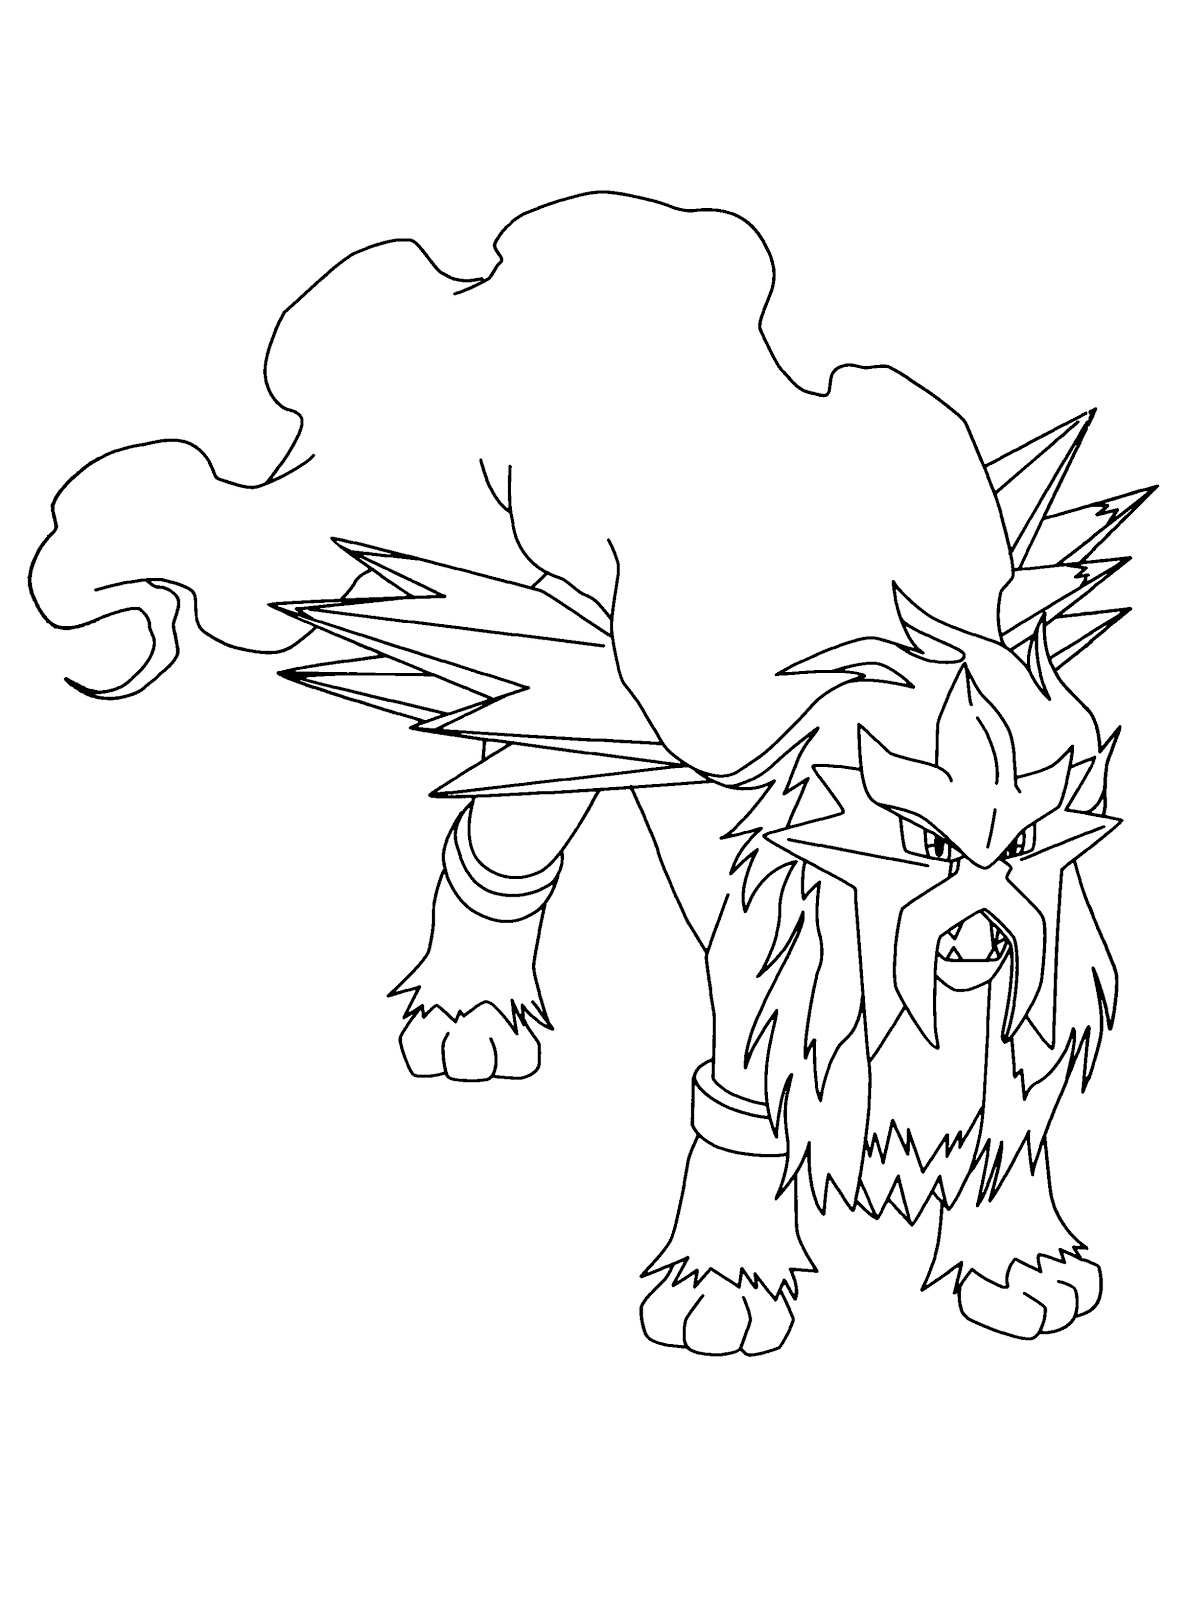 Entei Pokemon Coloring Pages - Free Pokemon Coloring Pages